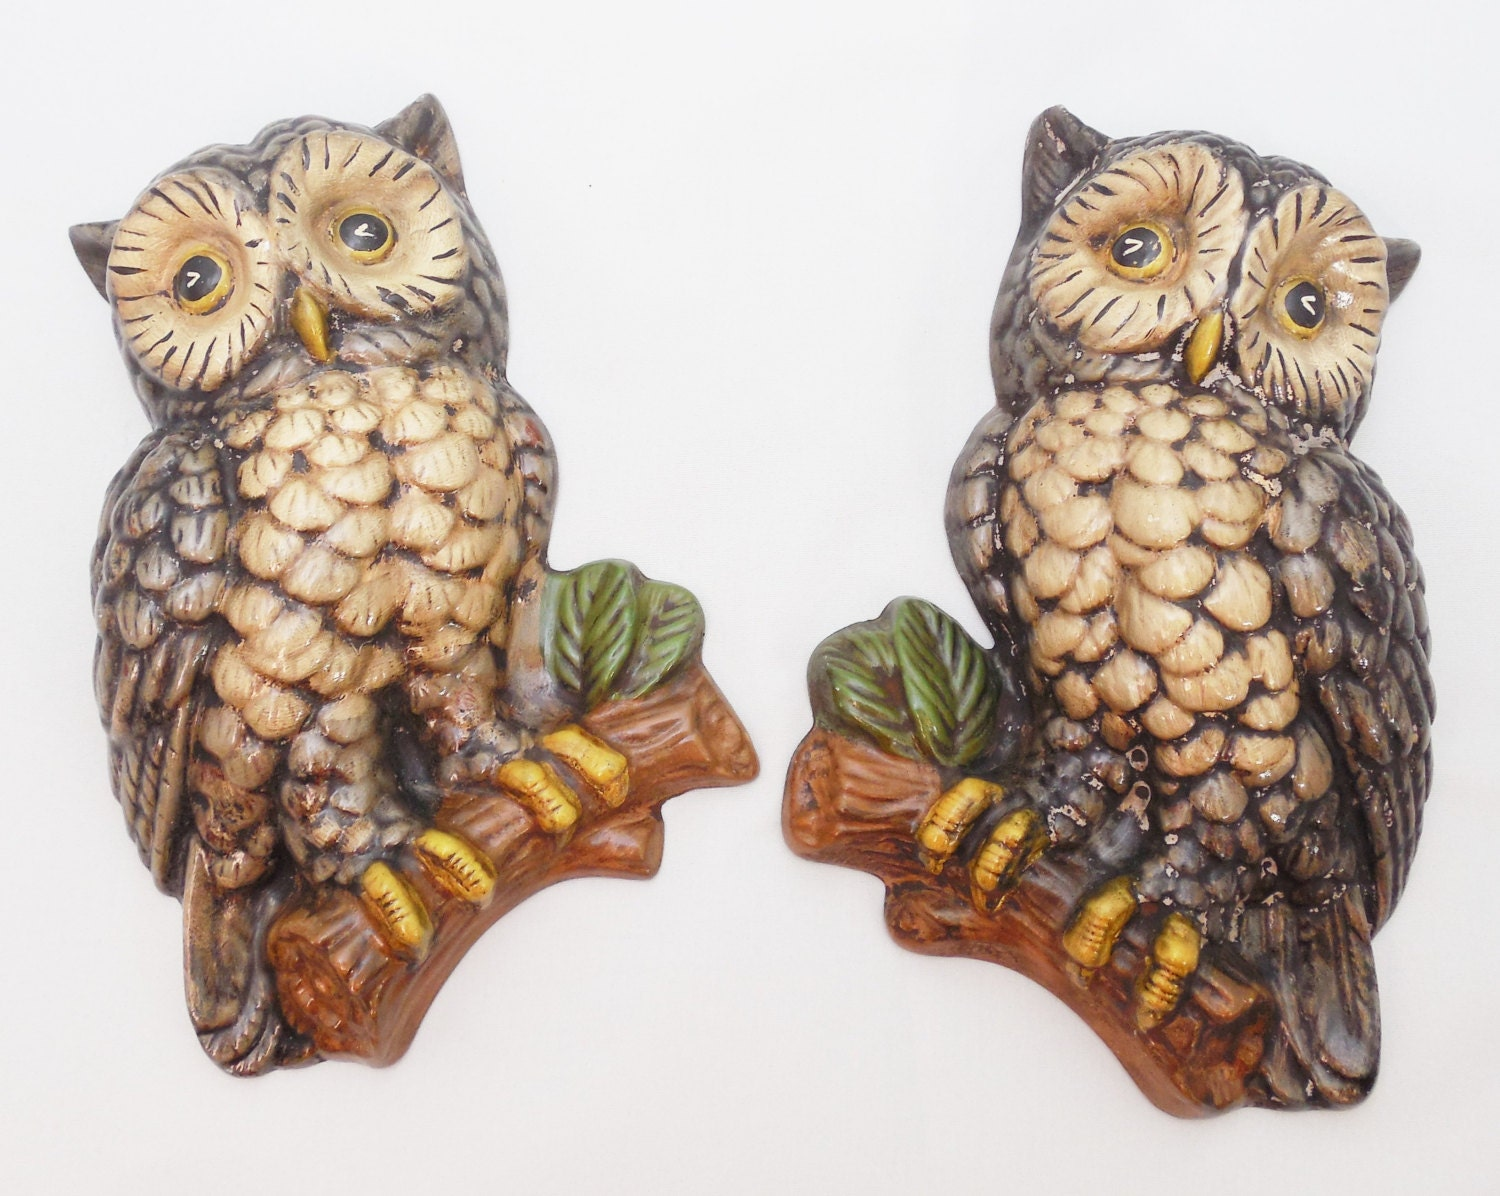 Ceramic Owl Wall Hangings 7 1 4 Vintage Owl Decor Owl